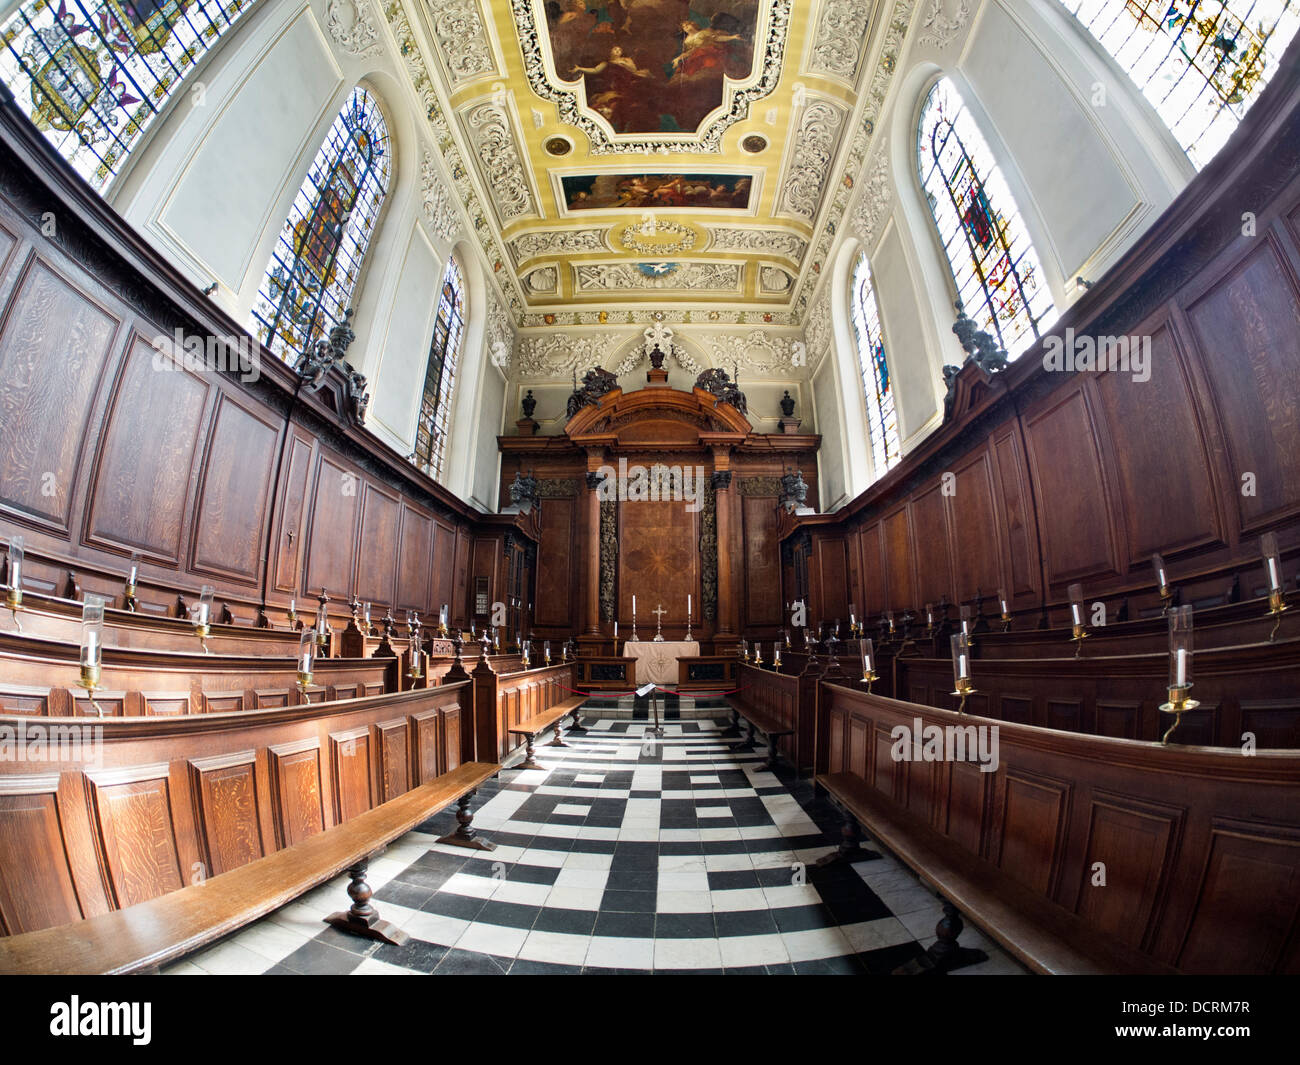 The Chapel of Trinity College, Oxford - fisheye view 7 - Stock Image